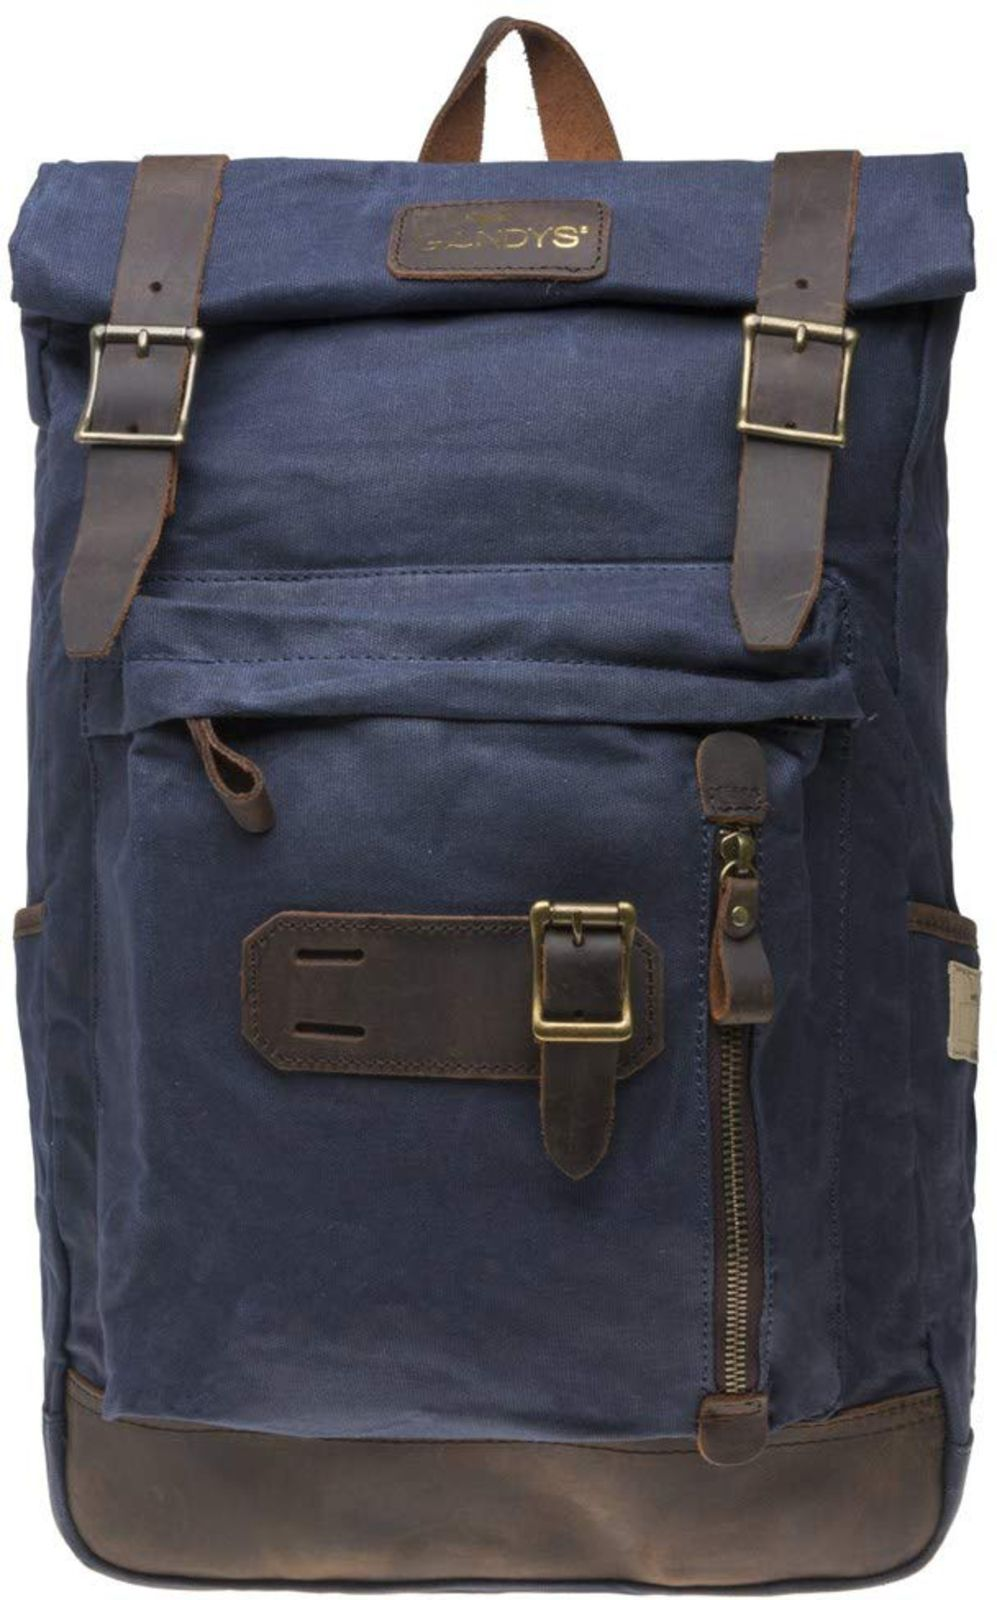 Gandys Bali Waxed Authentic Backpack Bag Blue